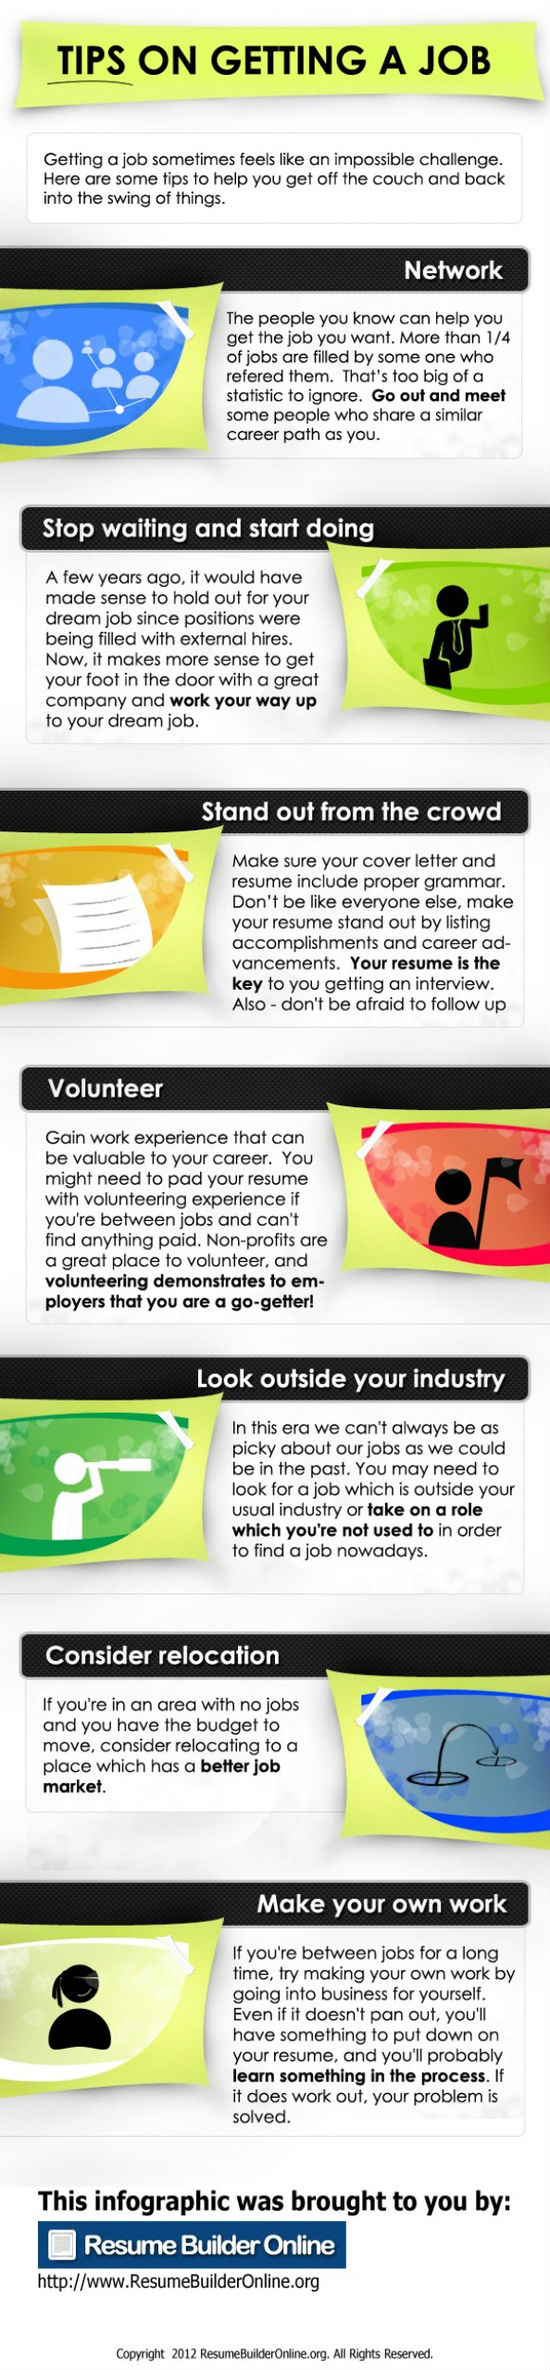 Job Hopping [Infographic]